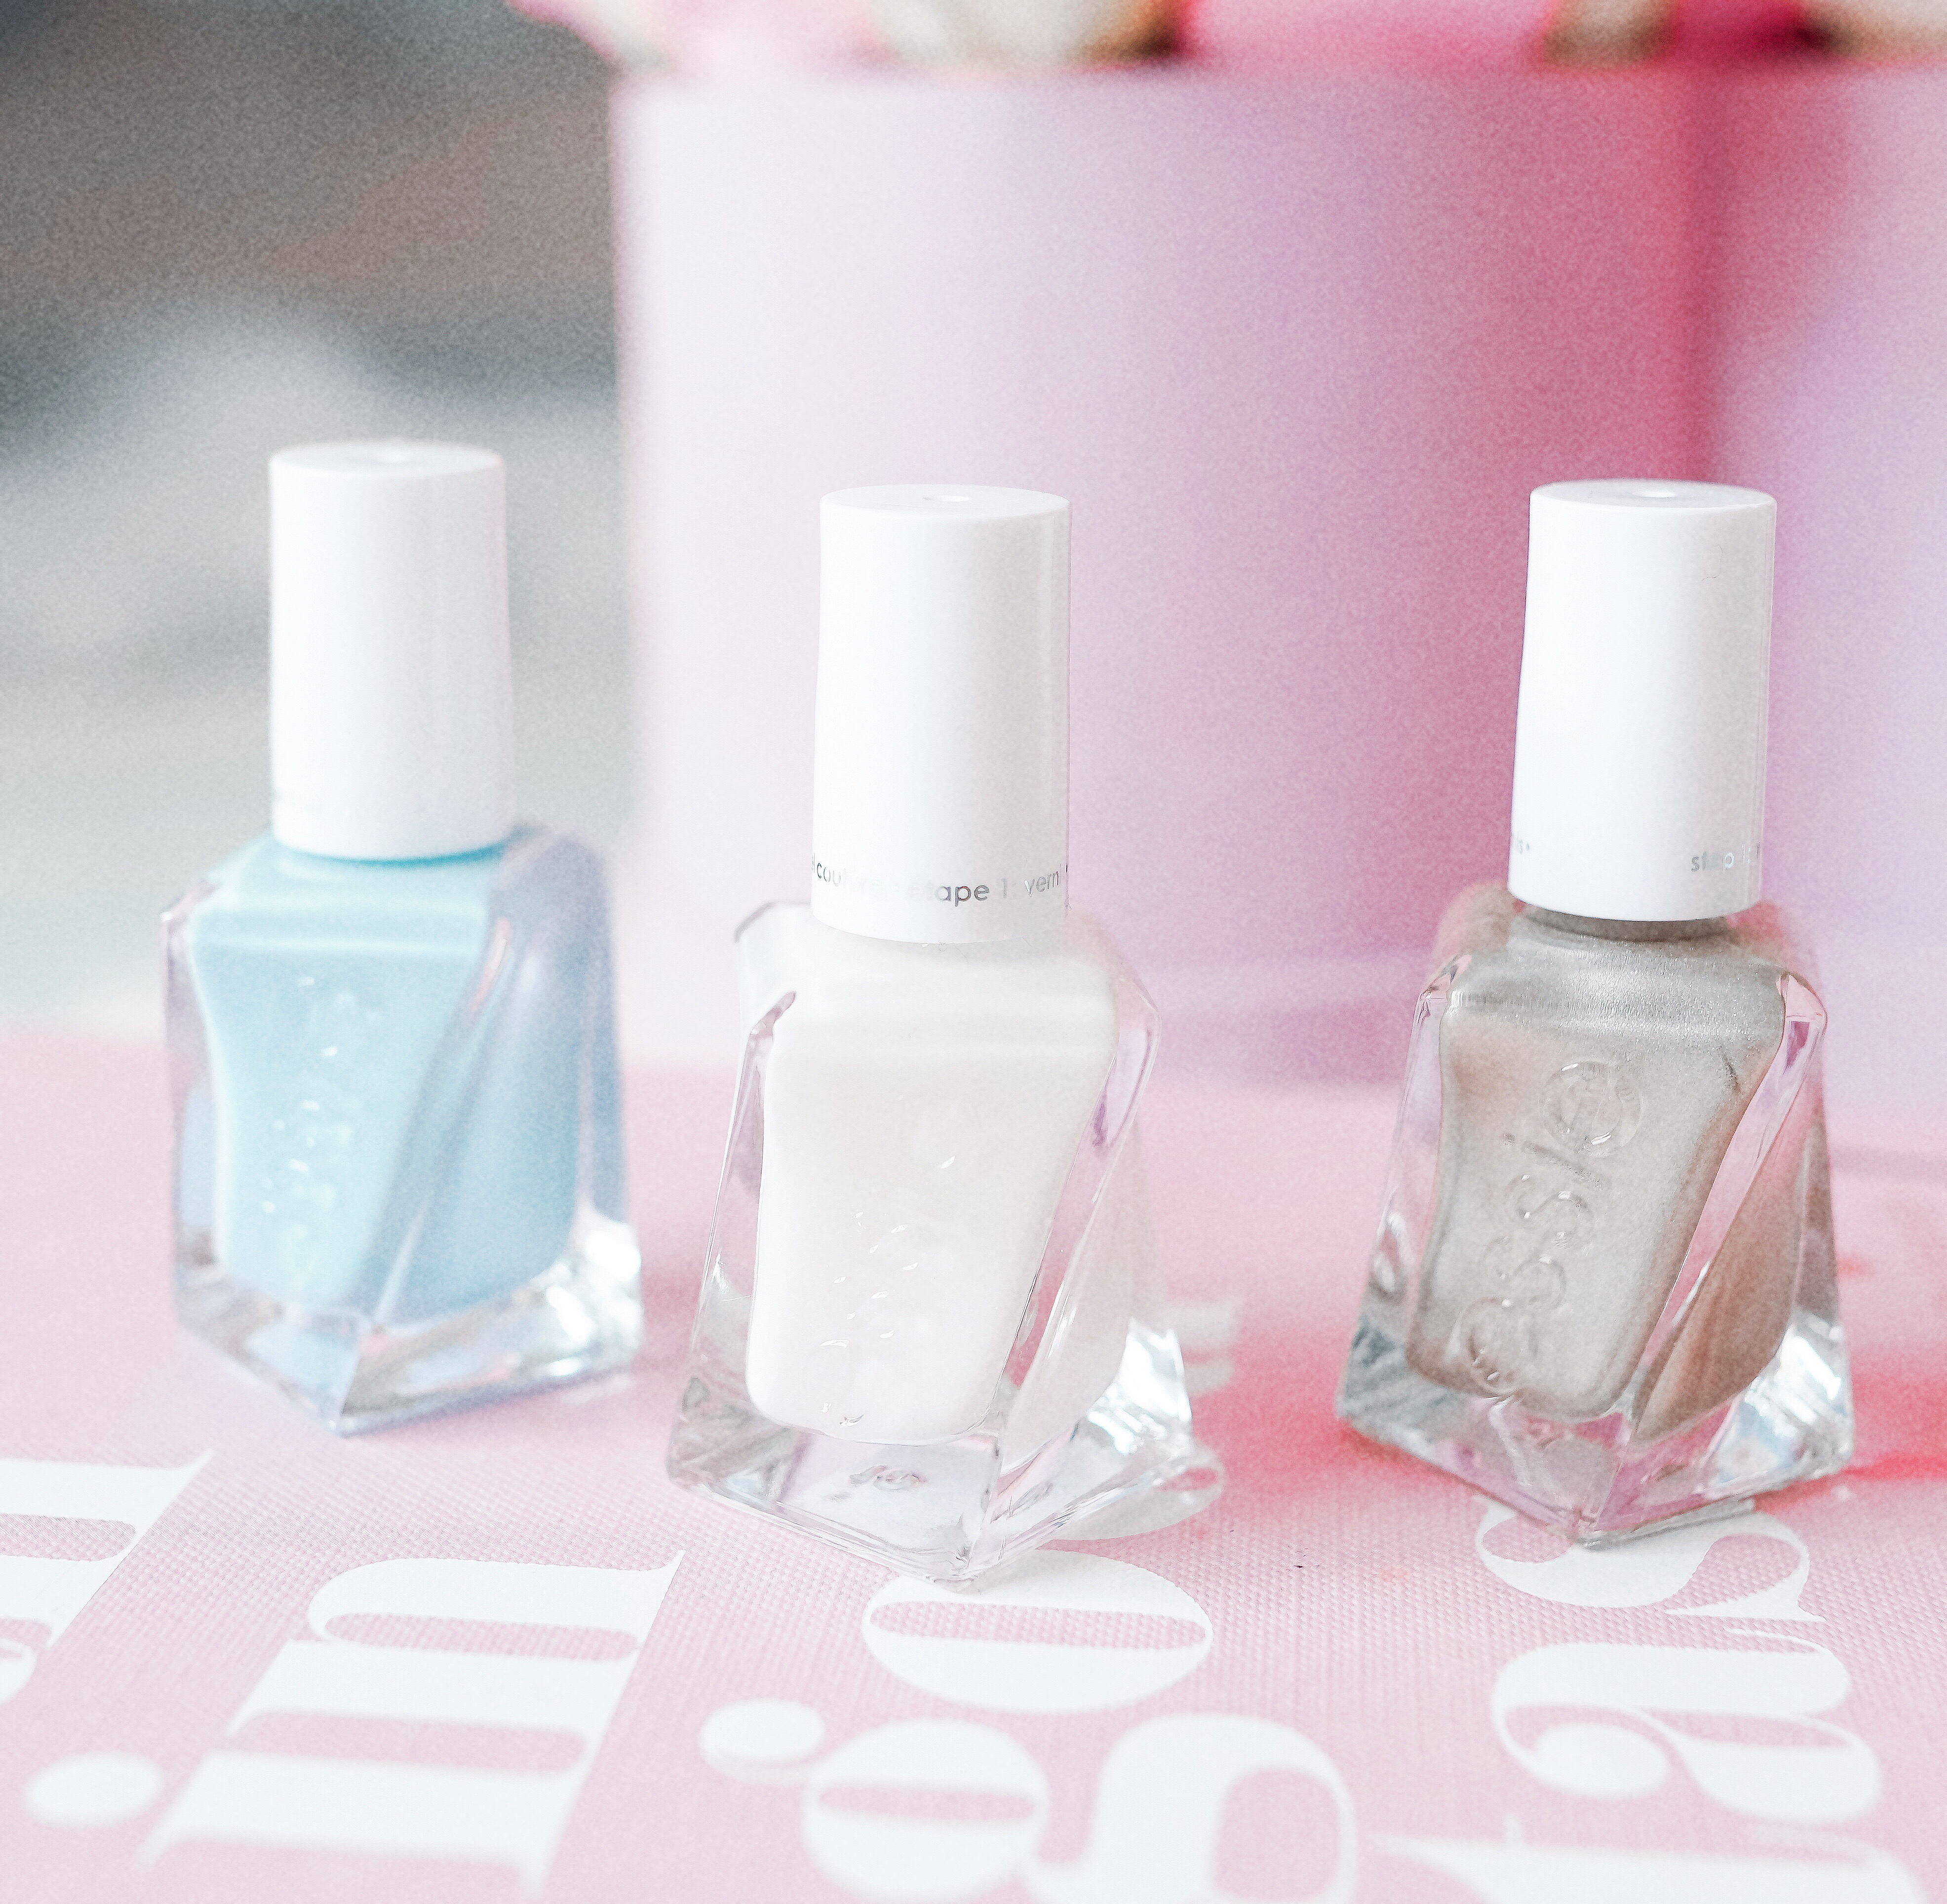 Essie's Gel Couture Collection